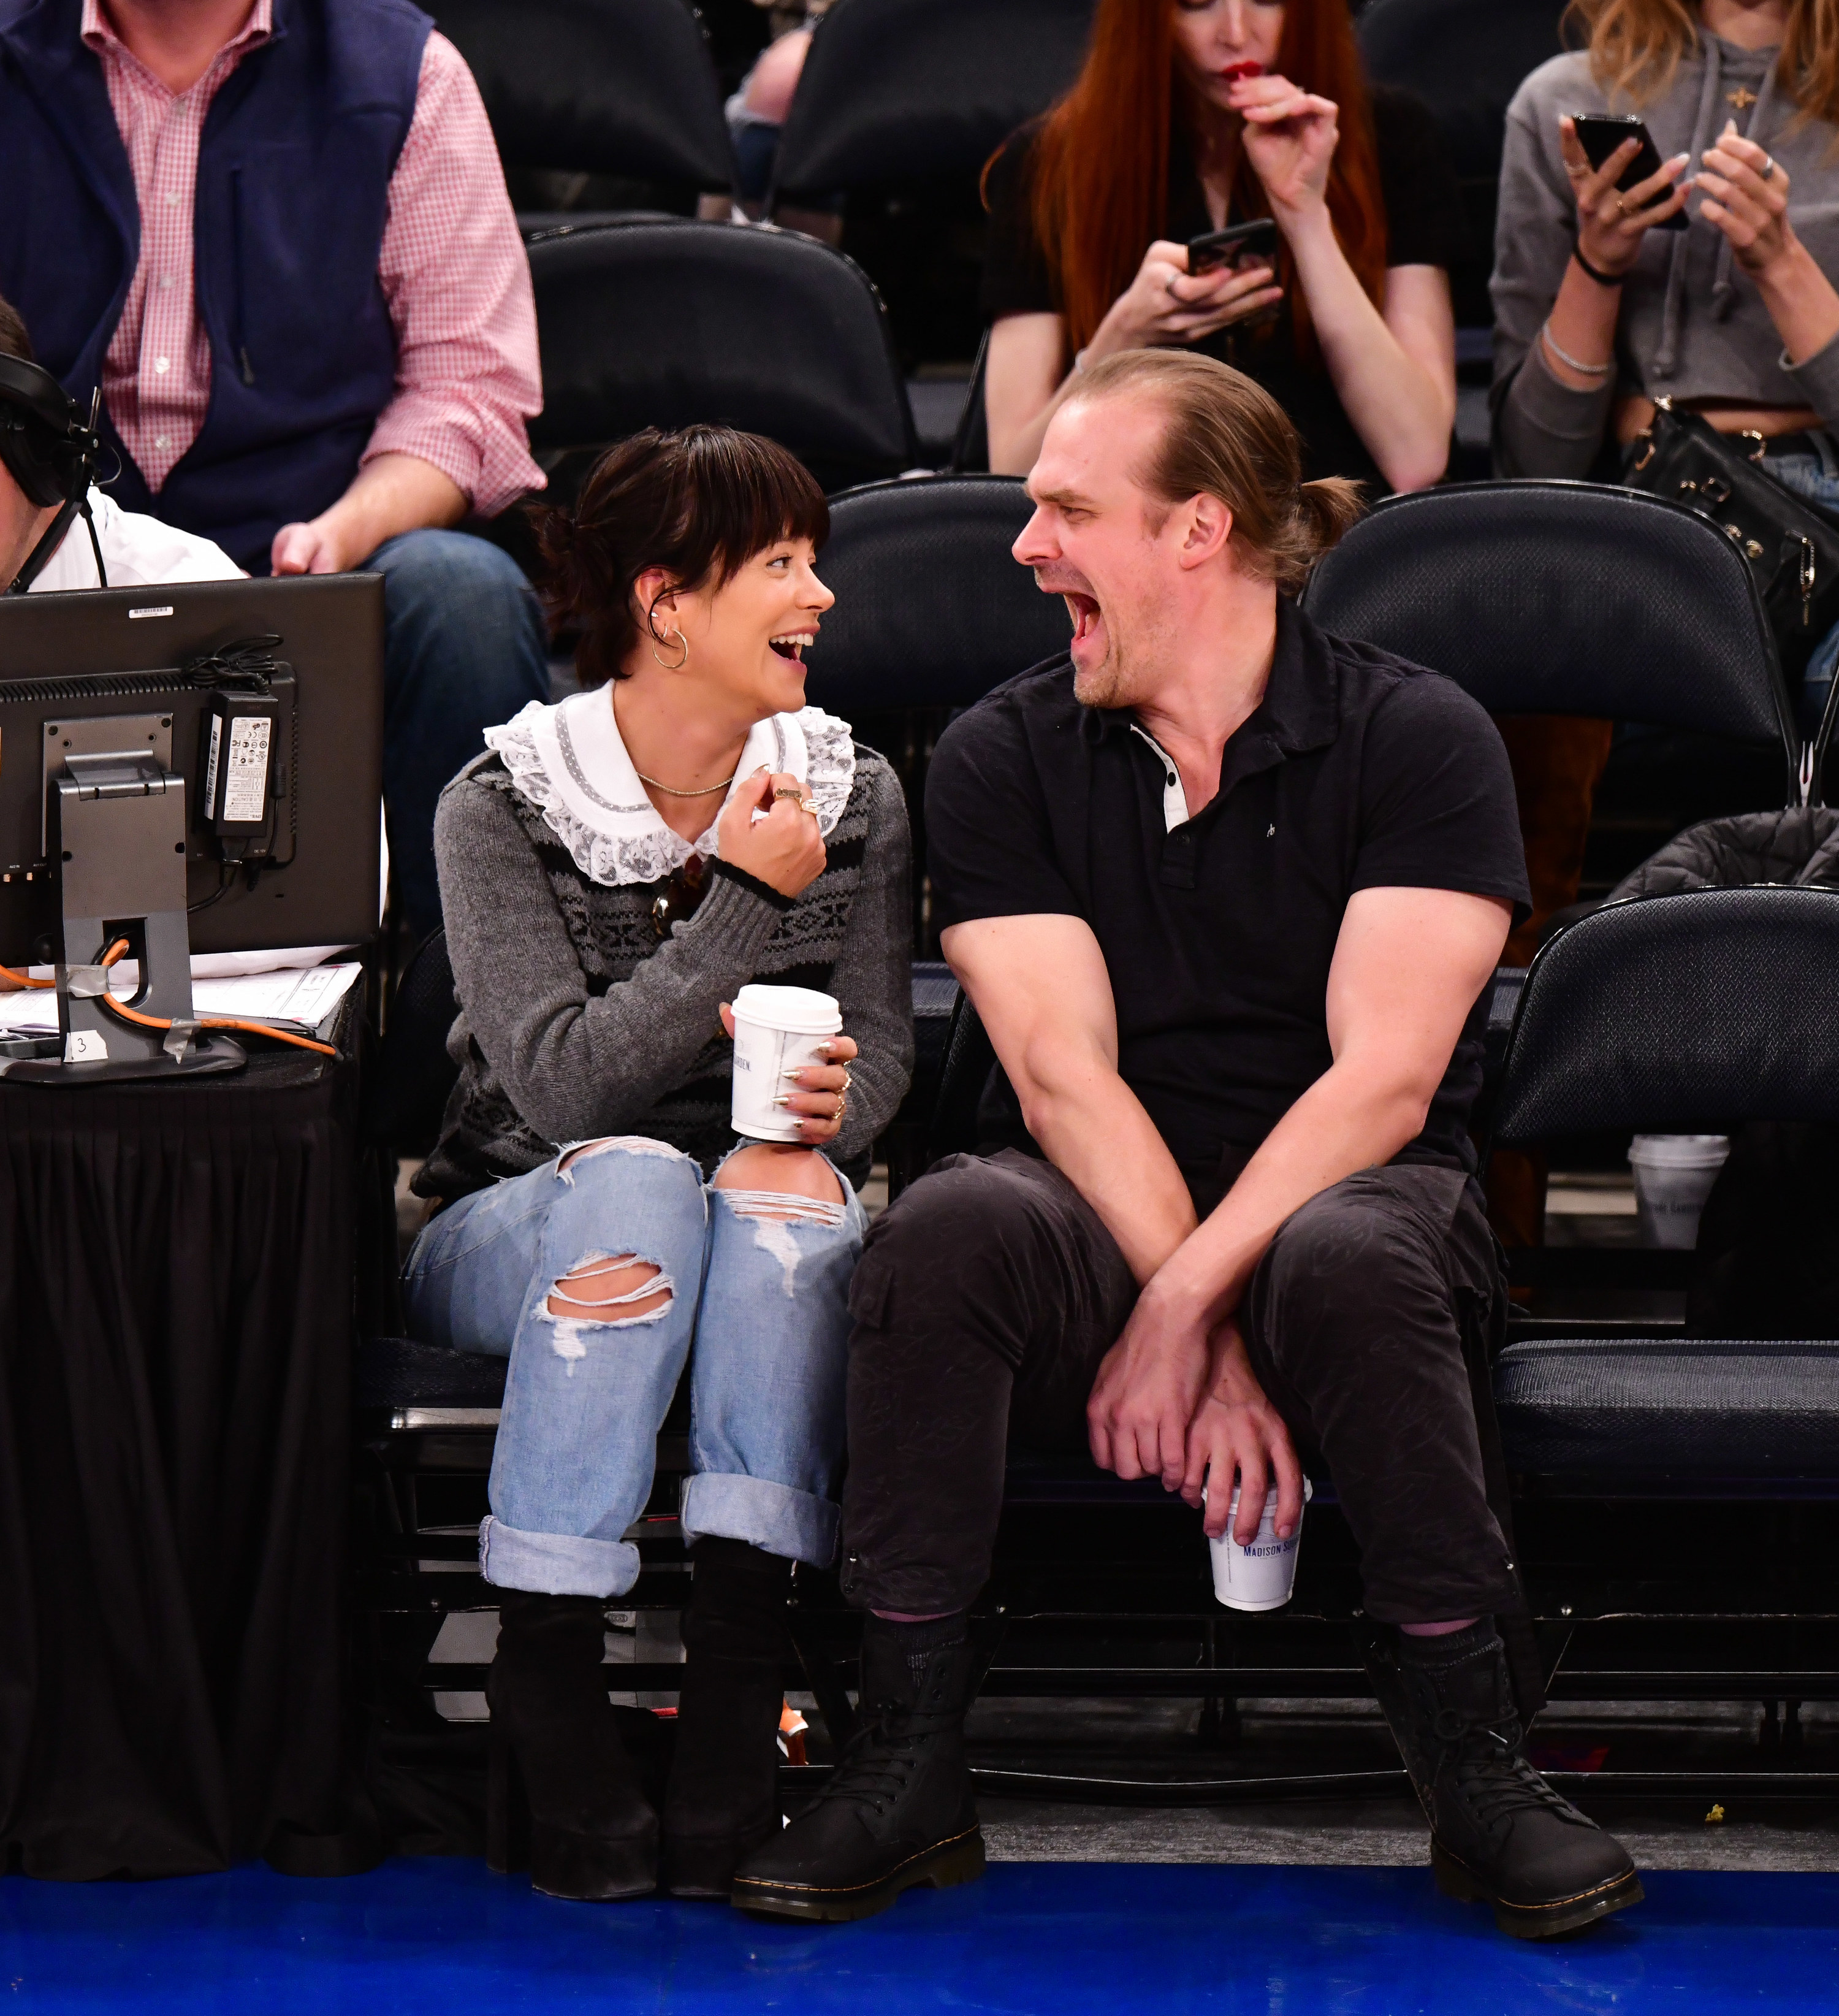 Lily Allen and David Harbour casually dressed at a sports event